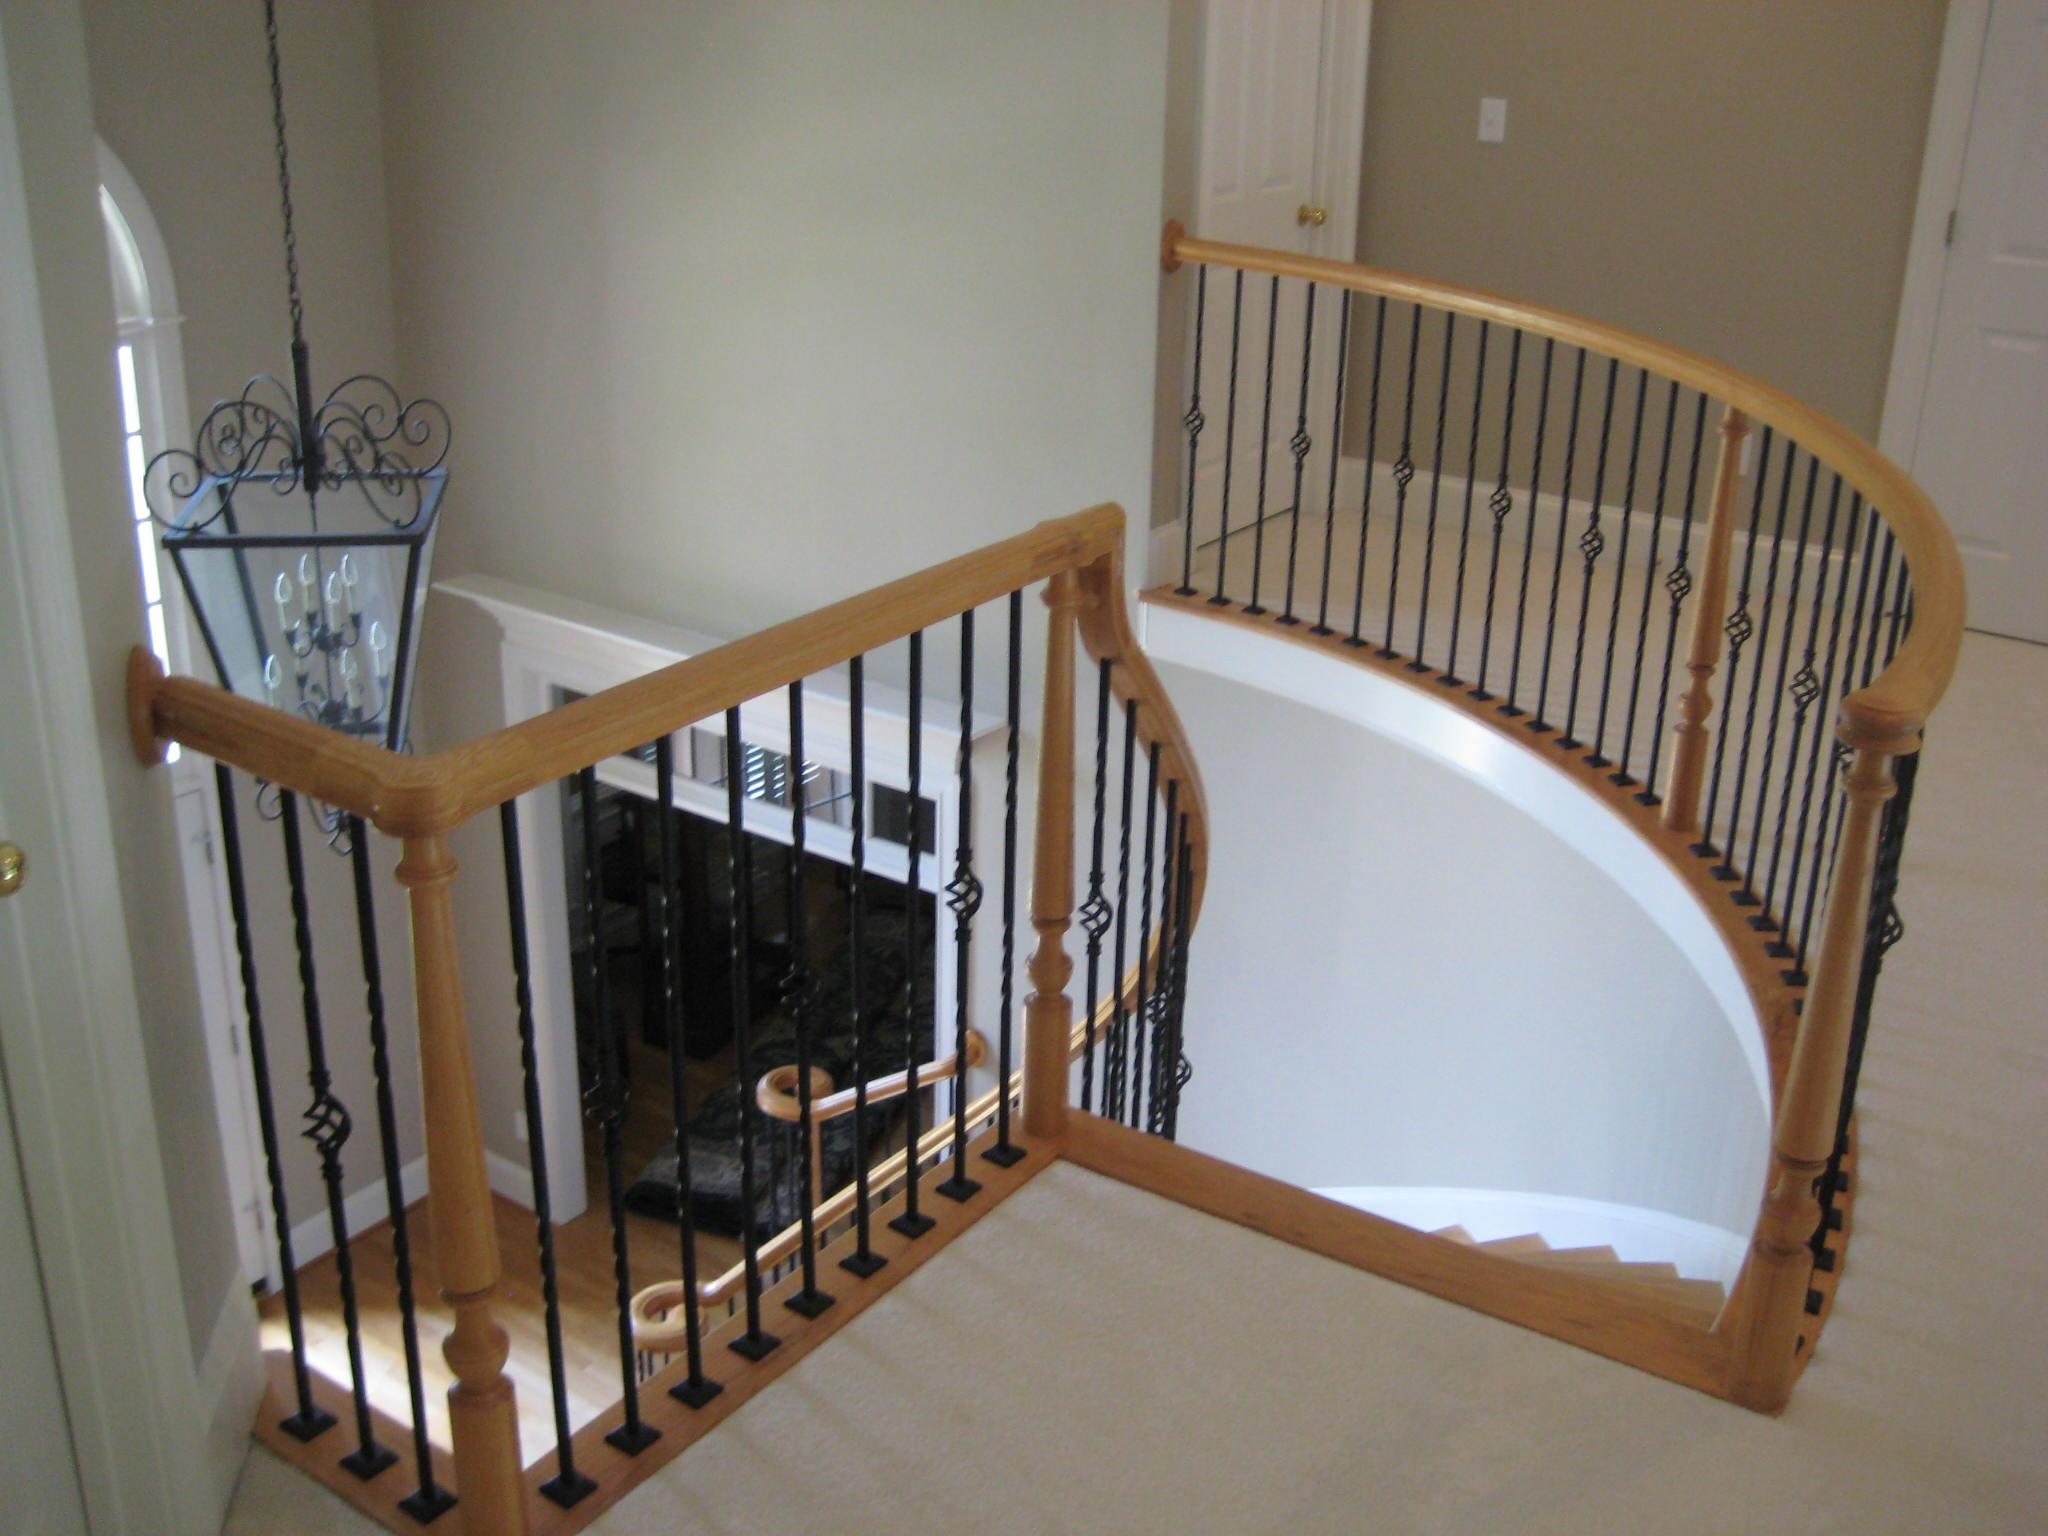 Iron Balusters enhances this elegant staircase.